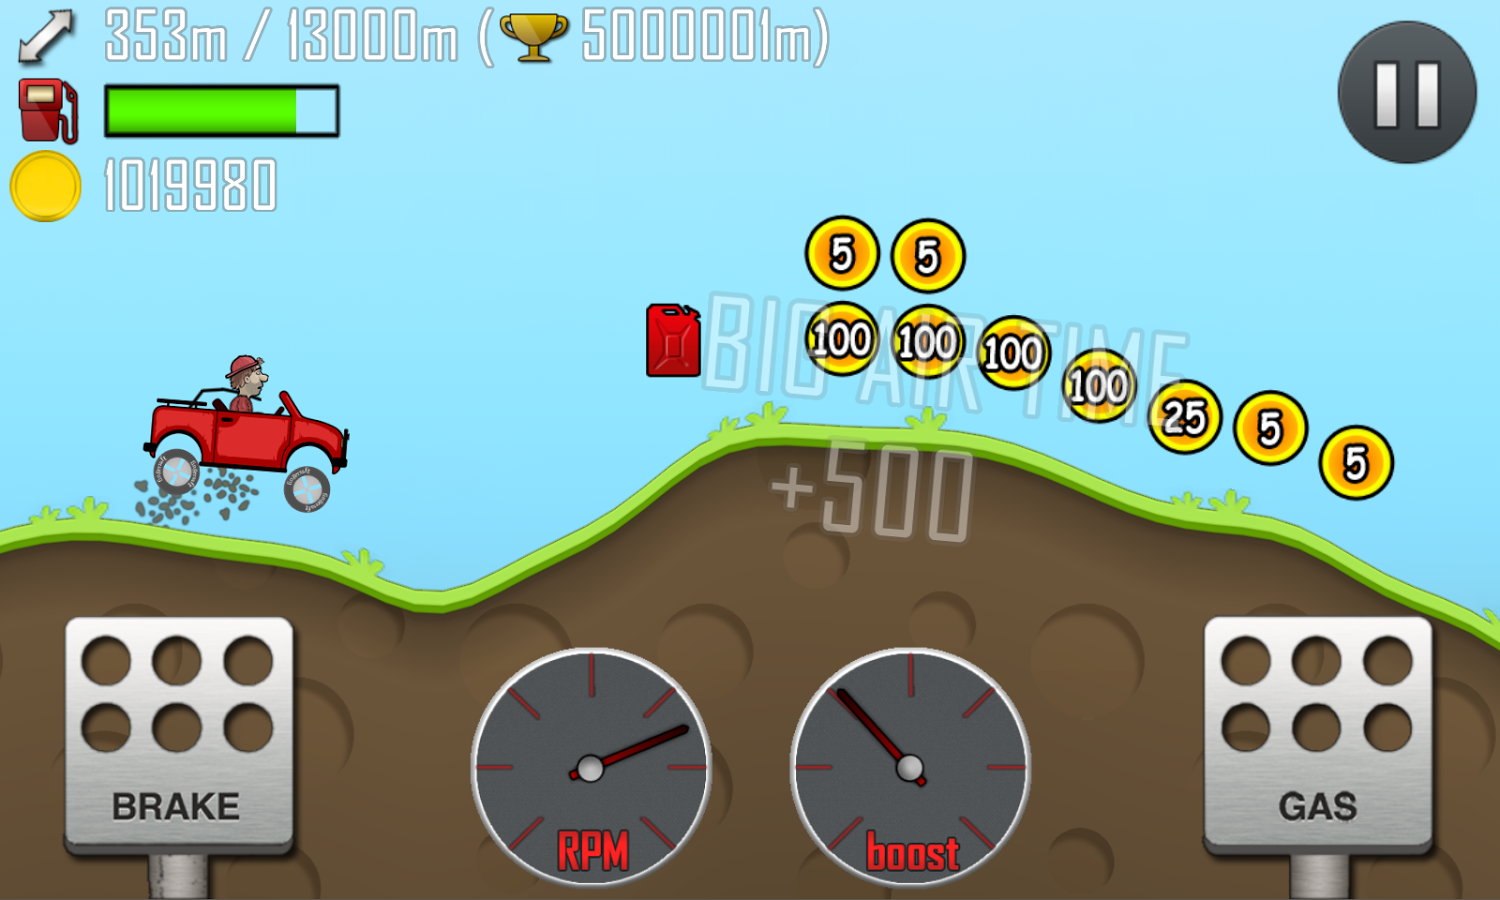 Hill Climb Racing v1.25.1 .apk File